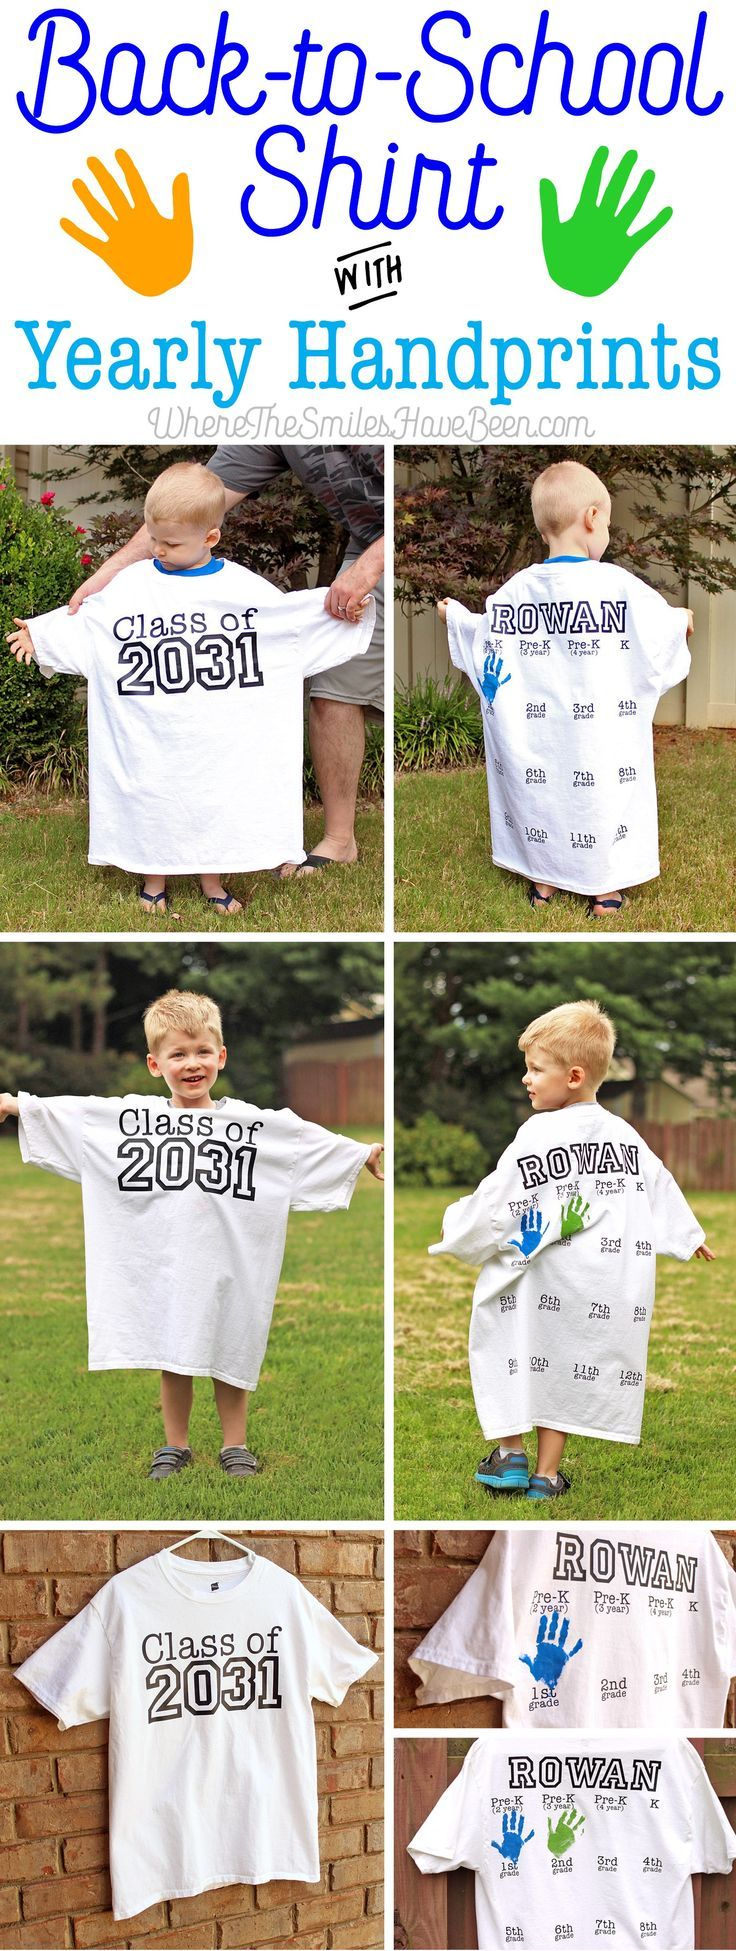 Learn how to create this cute keepsake for your child that you can update each school year! Back-to-School Shirt with Yearly Handprints: Year 2!   Where The Smiles Have Been